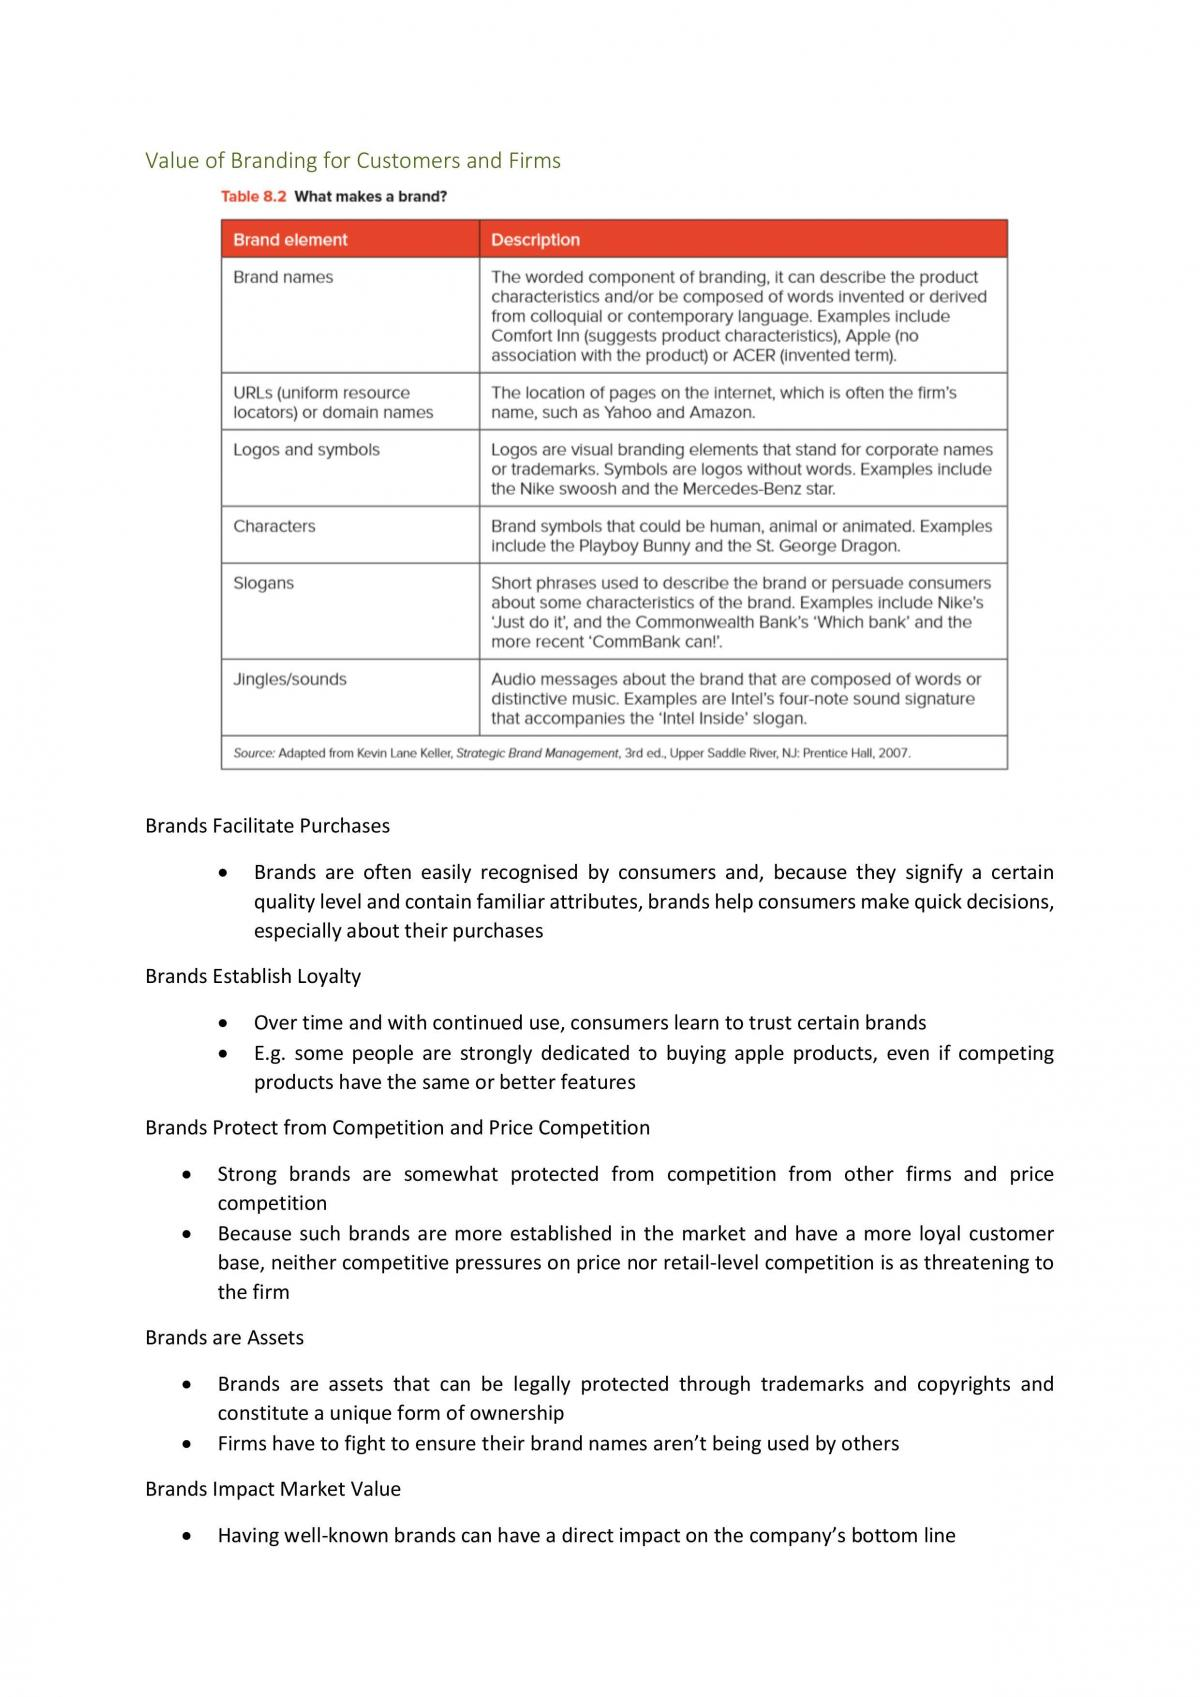 Full Textbook Notes for Marketing Fundamentals - Page 36